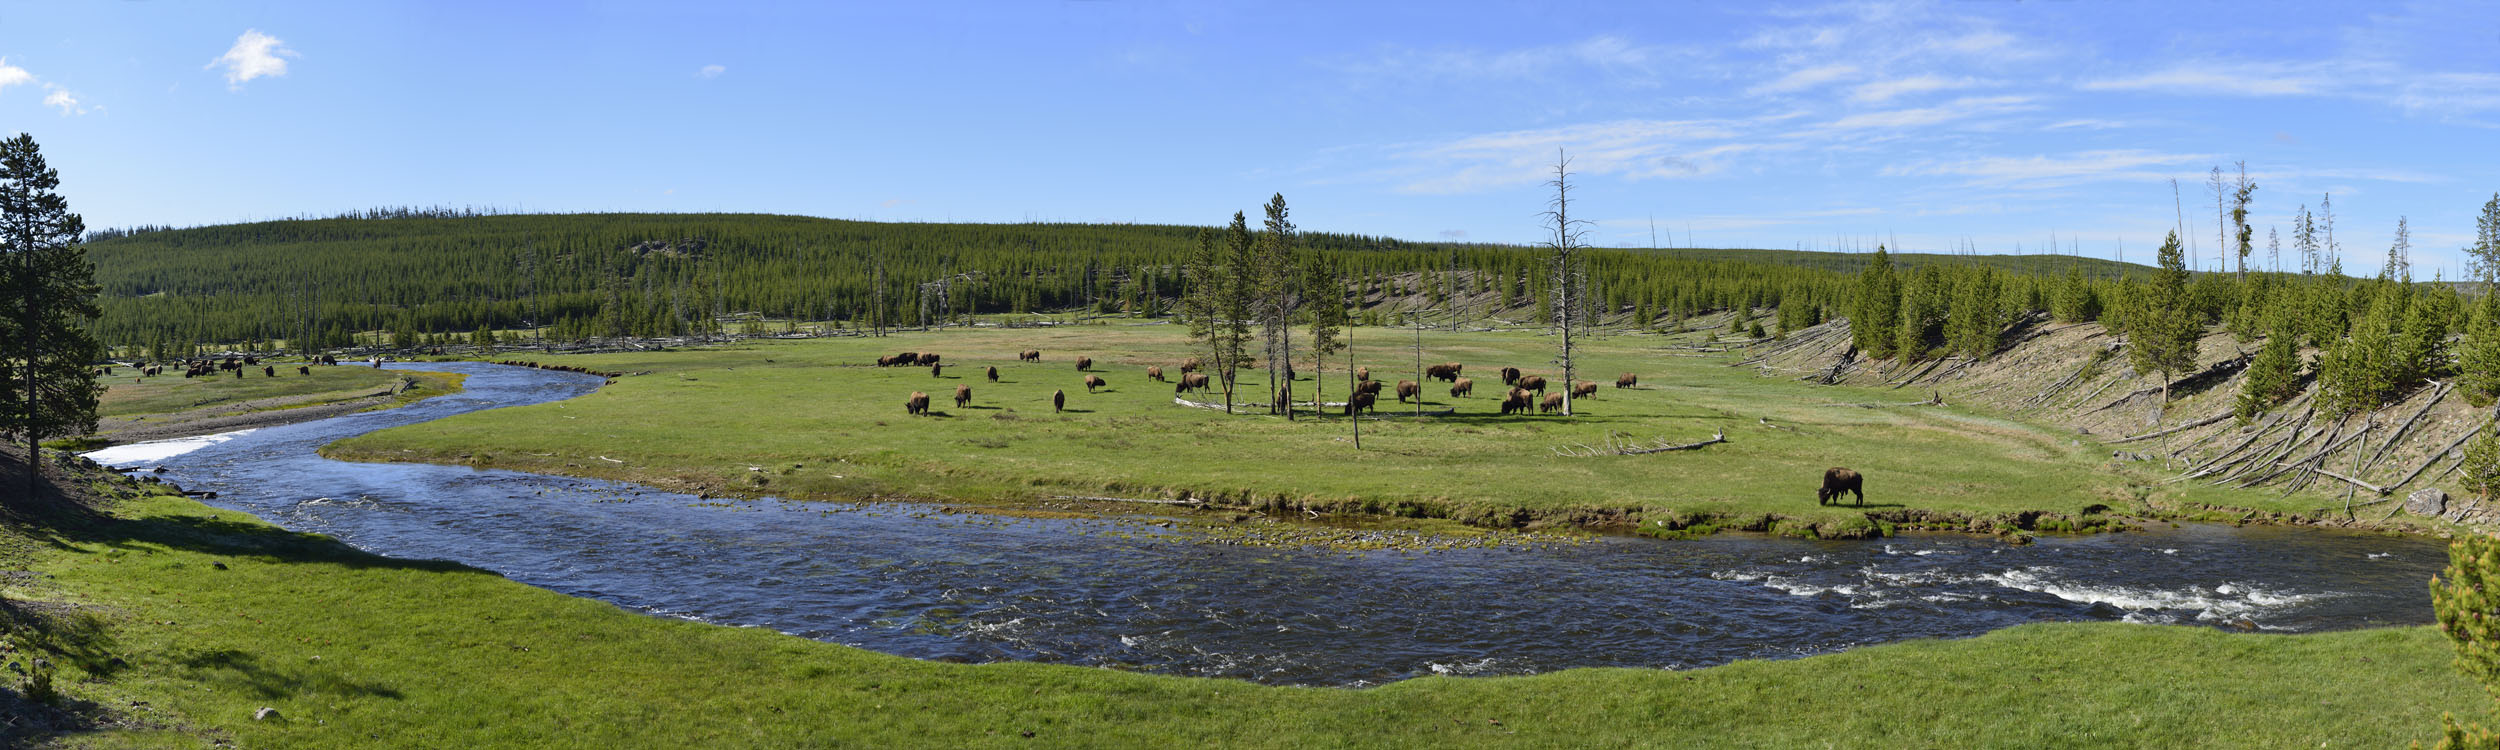 Bison in Gibbon River Meadow